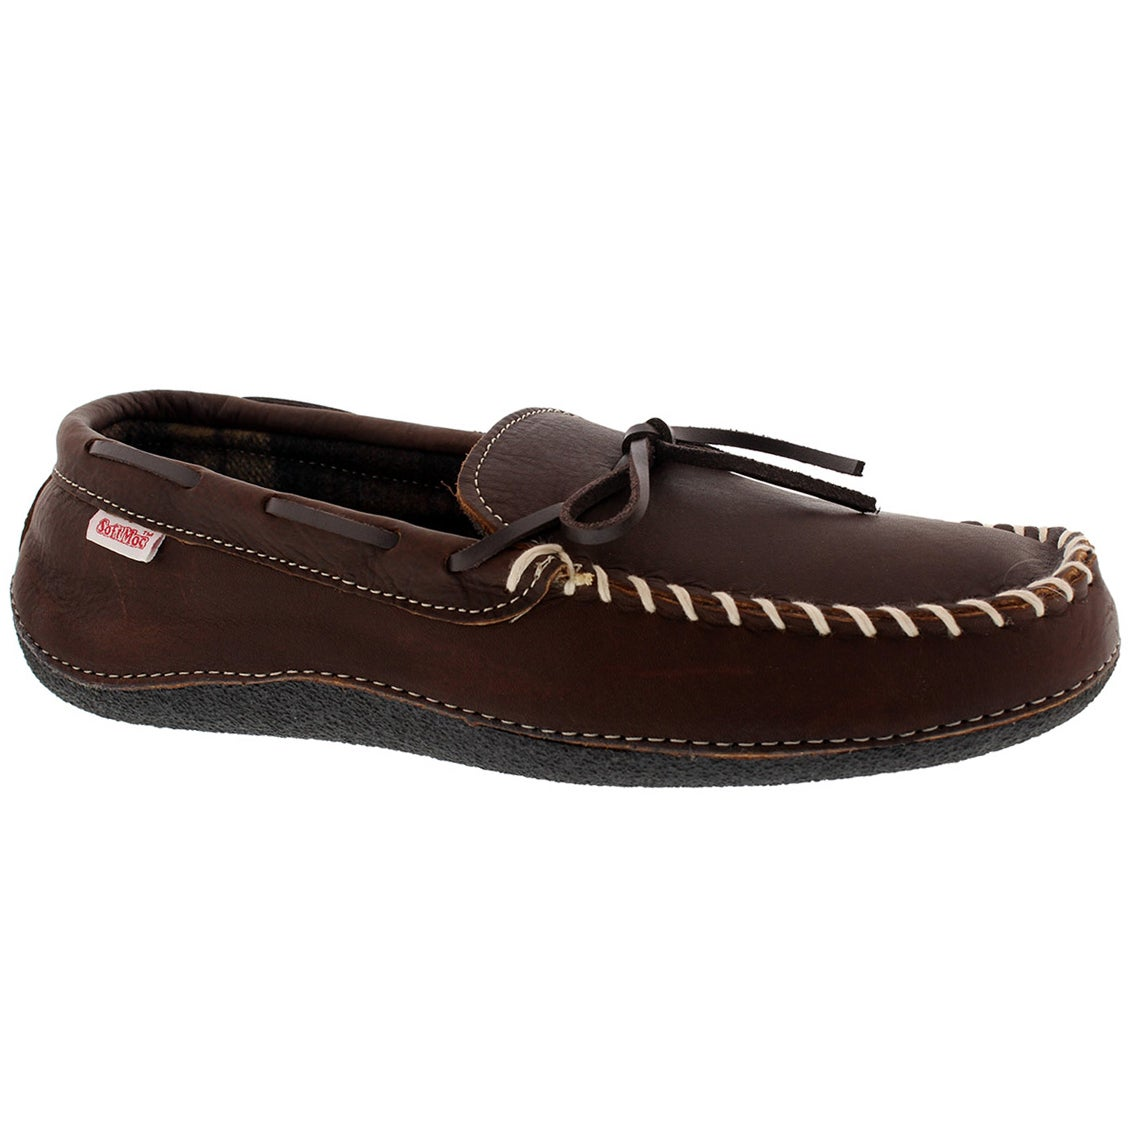 Men's GARY brown leather plaid lined moccasins